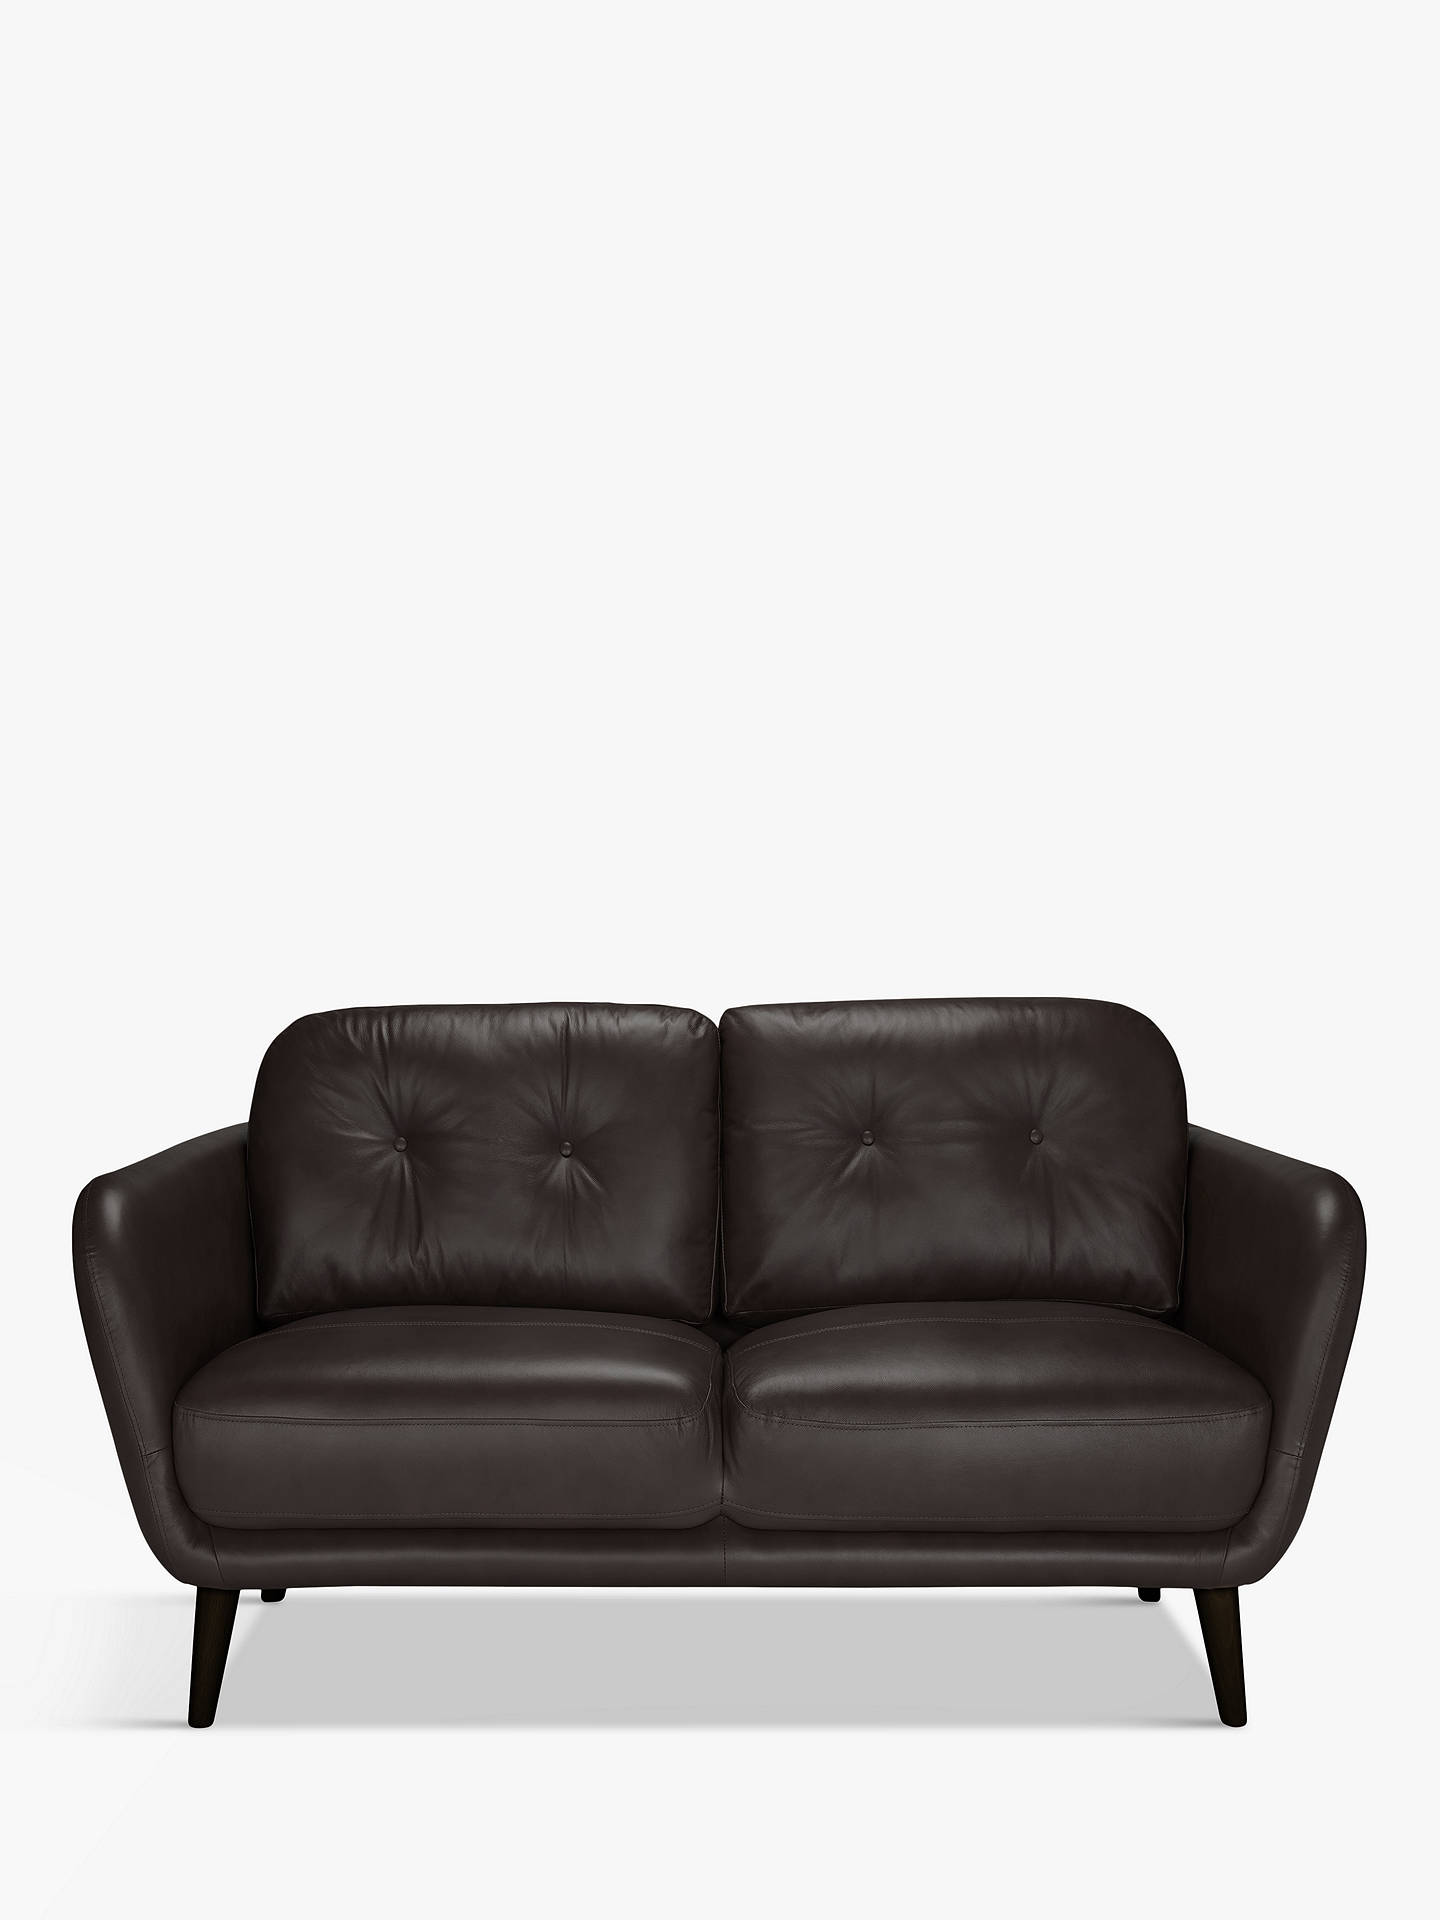 BuyHouse by John Lewis Arlo Small 2 Seater Leather Sofa, Dark Leg, Demetra Charcoal Online at johnlewis.com